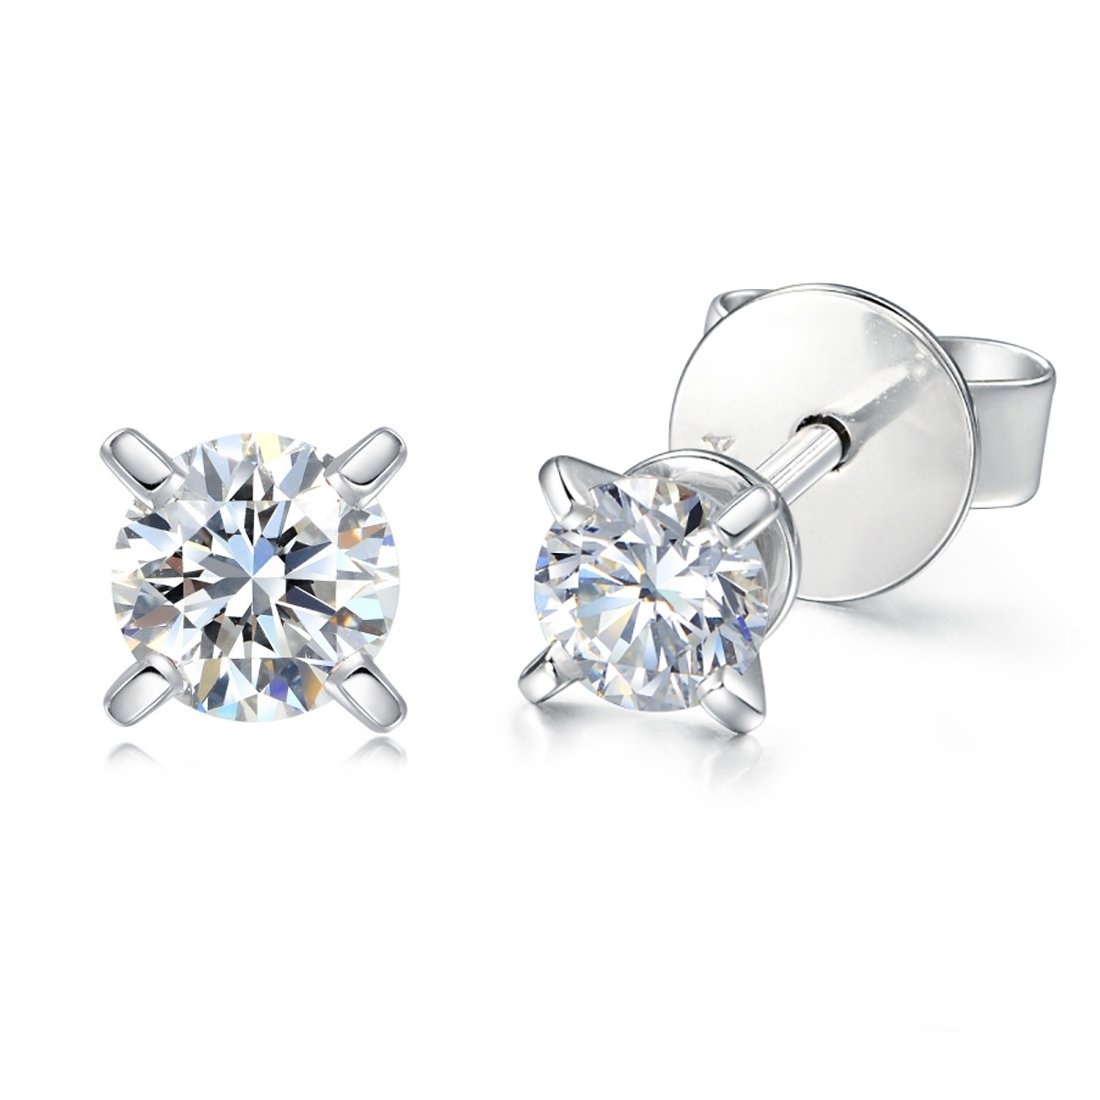 Carleen Solid 14k White Gold Eco-friendly Lab-grown Diamonds 02cttw Stunning Solitaire Stud Earrings for Women( Color D-E Clarity VS